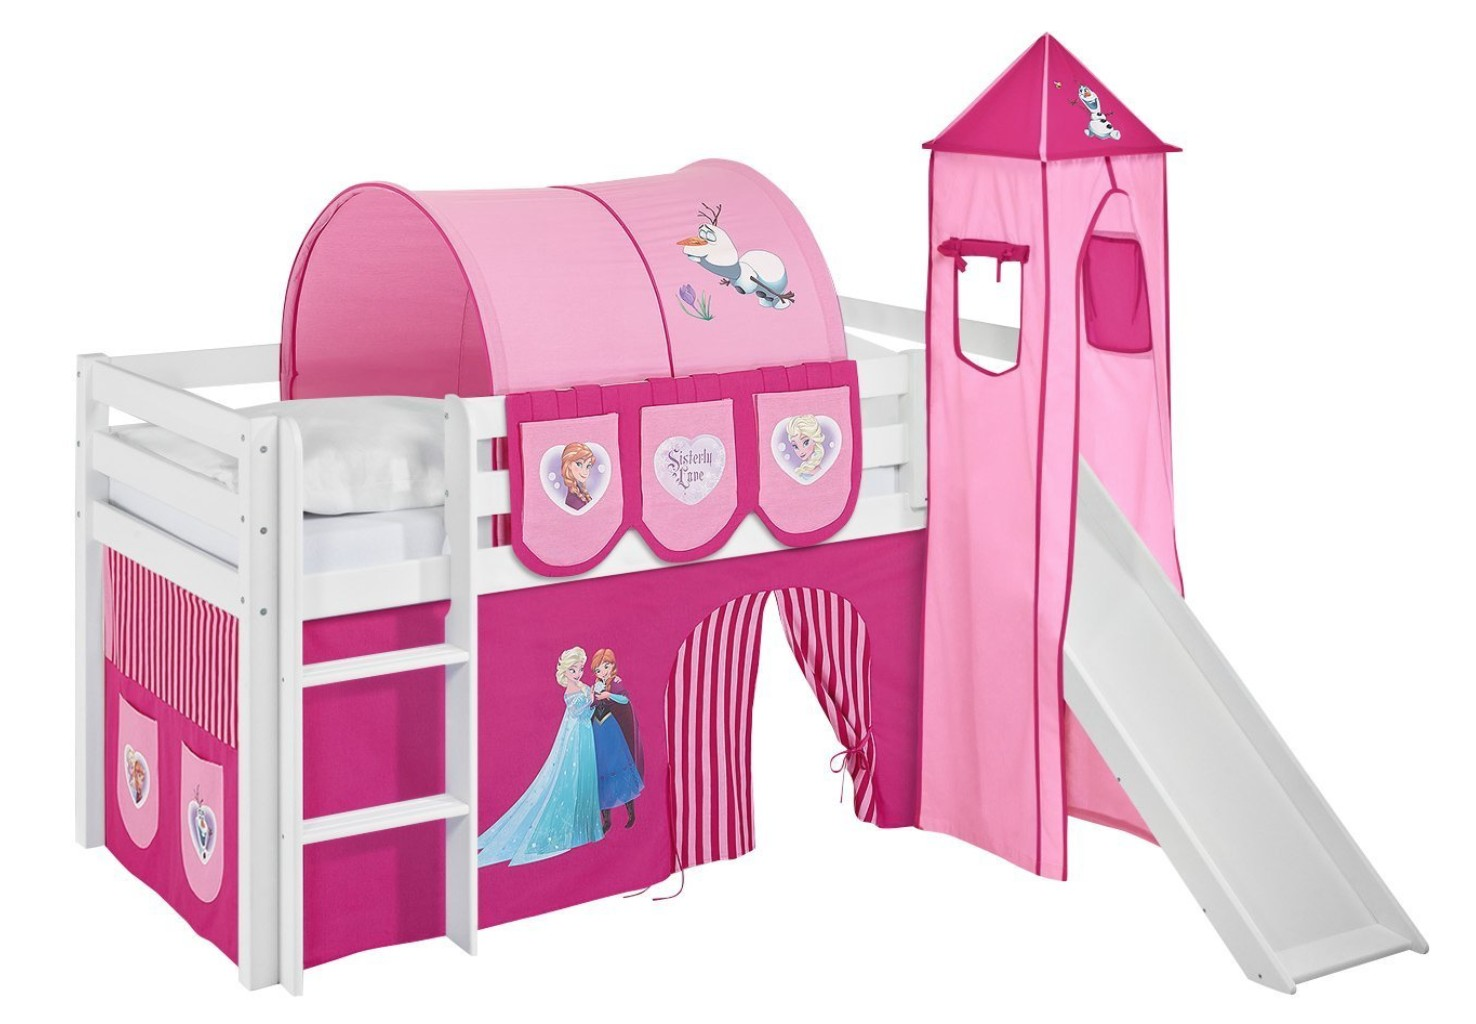 lit sur lev blanc laqu toboggan rideau et tour disney princesses 90x190cm sommier sans sommier. Black Bedroom Furniture Sets. Home Design Ideas